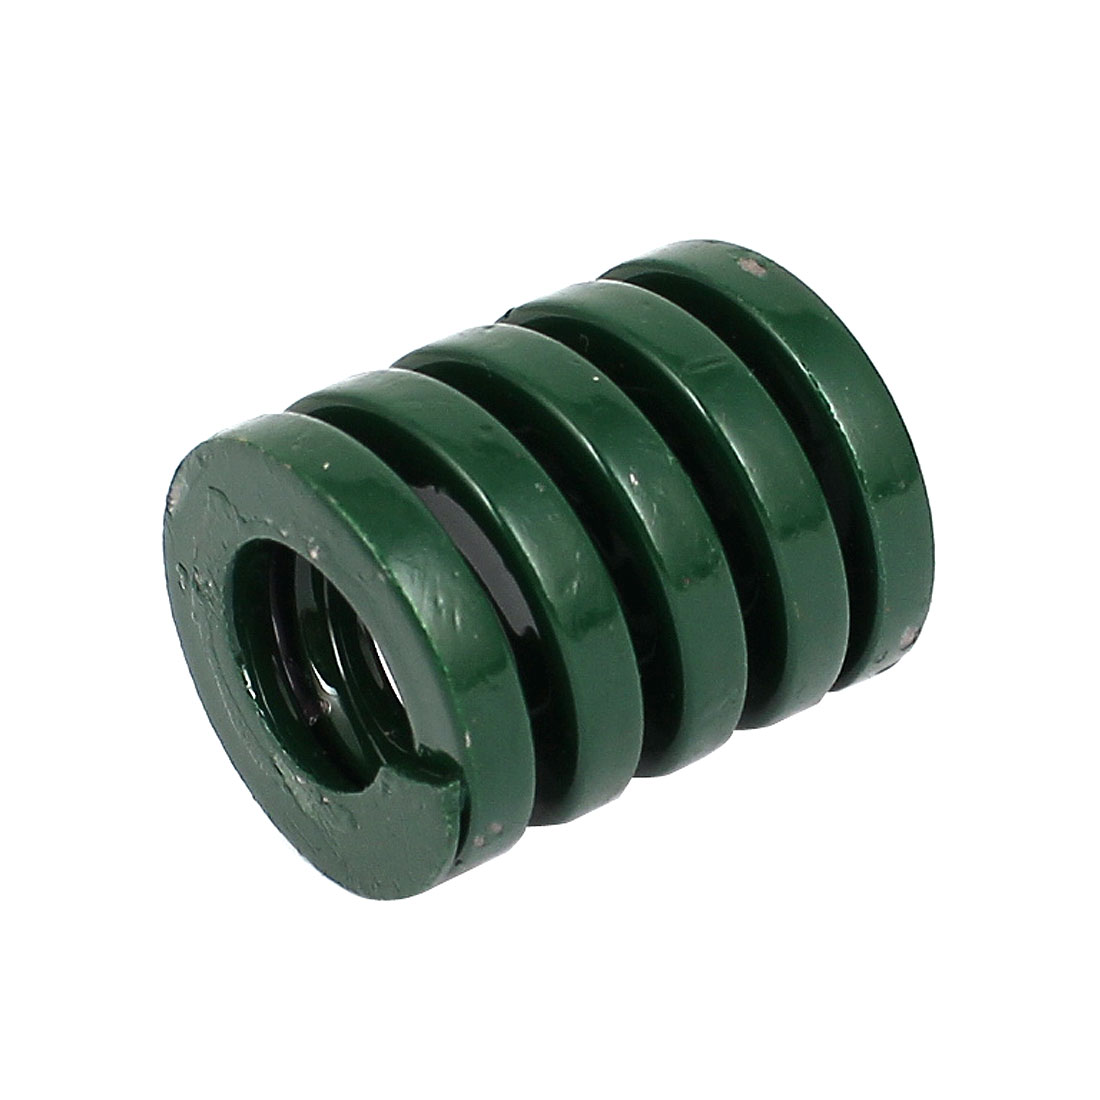 25mm OD 30mm Long Heavy Load Coil Stamping Compression Mold Die Spring Green